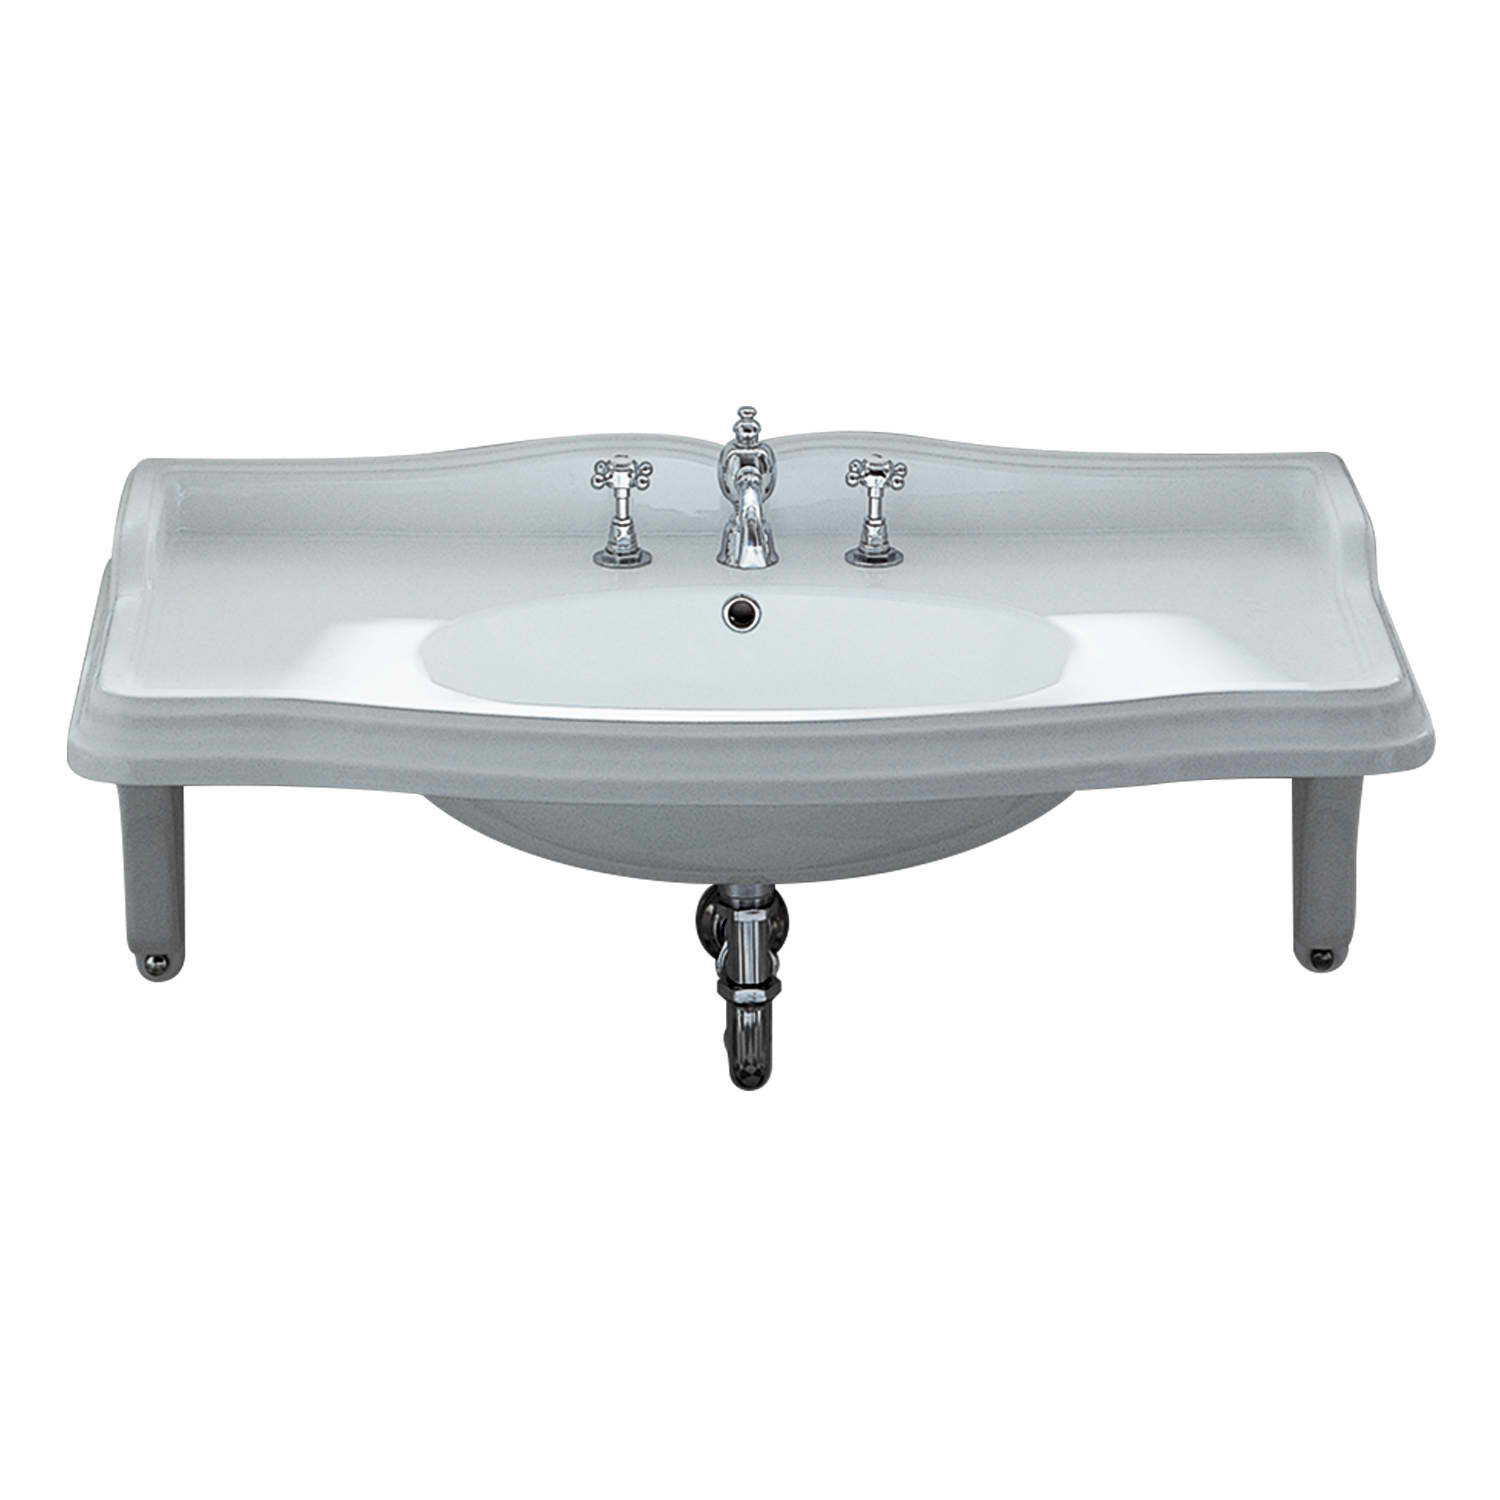 Isabella Collection Large Rectangular Wall Mount Basin with Integrated Oval Bowl, Widespread or Single Hole Faucet Drilling and Ceramic Shelf Supports